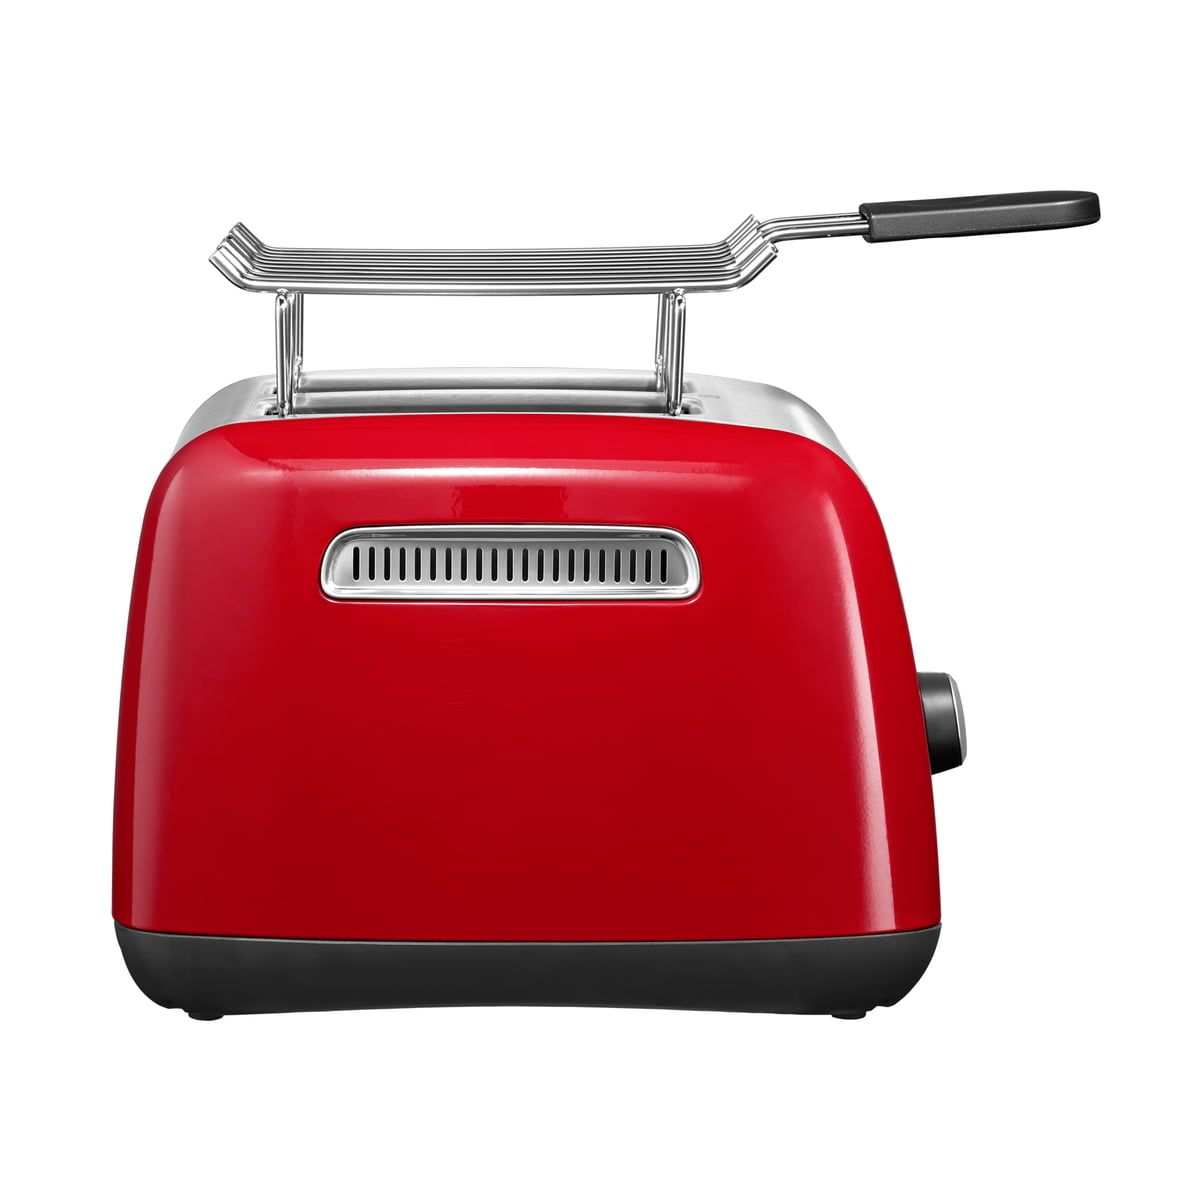 red hei fit page product wid com qvc kitchenaid countertop qlt op sharpen id oven fmt toaster constrain